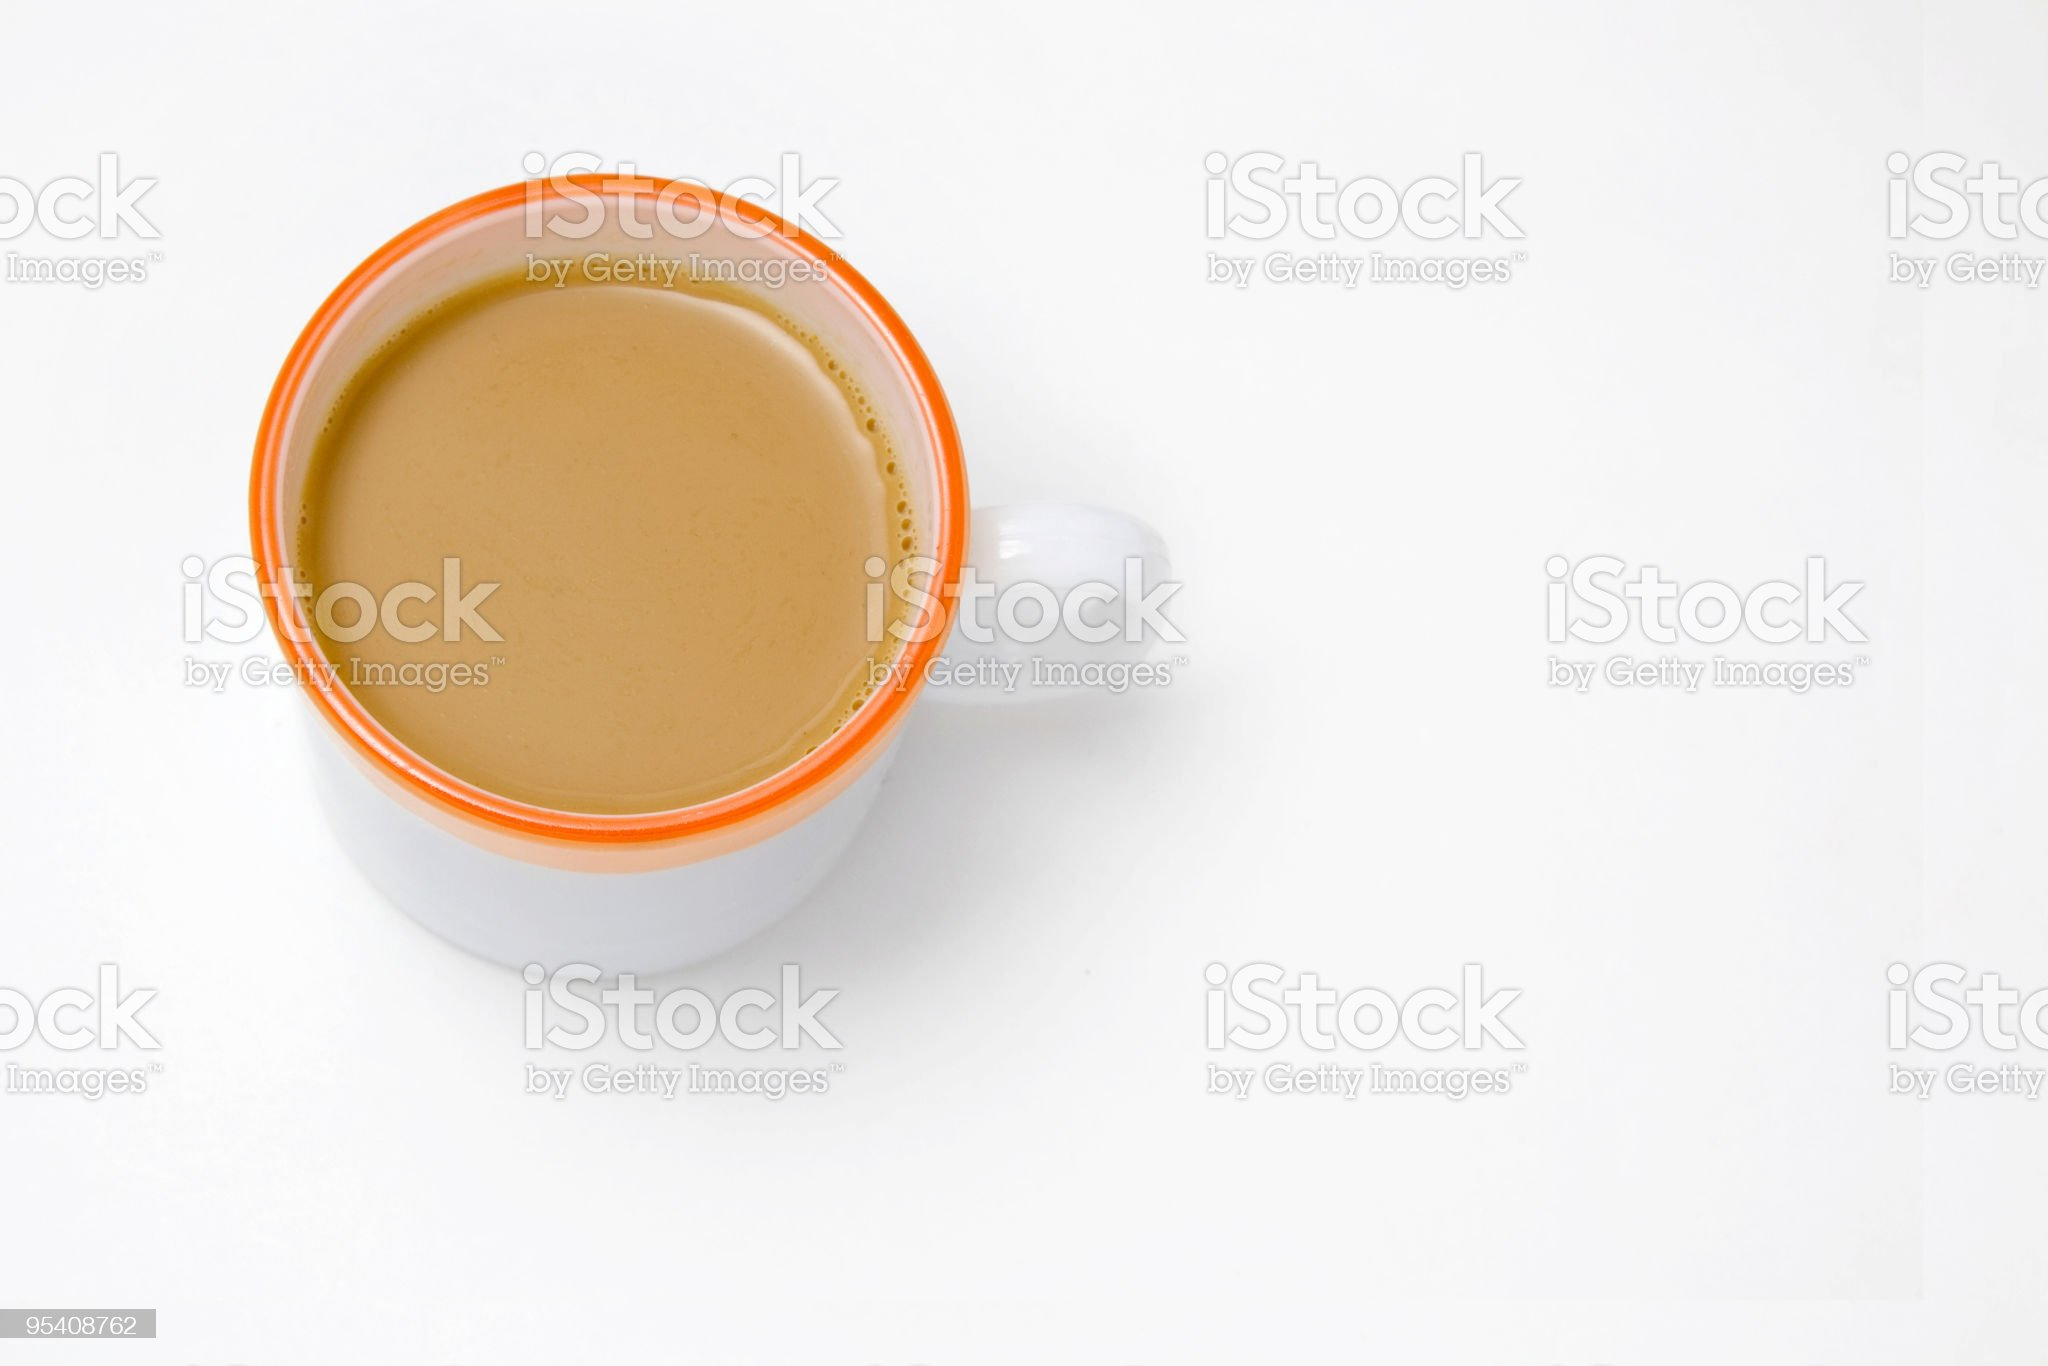 Isolated Cup of Tea royalty-free stock photo